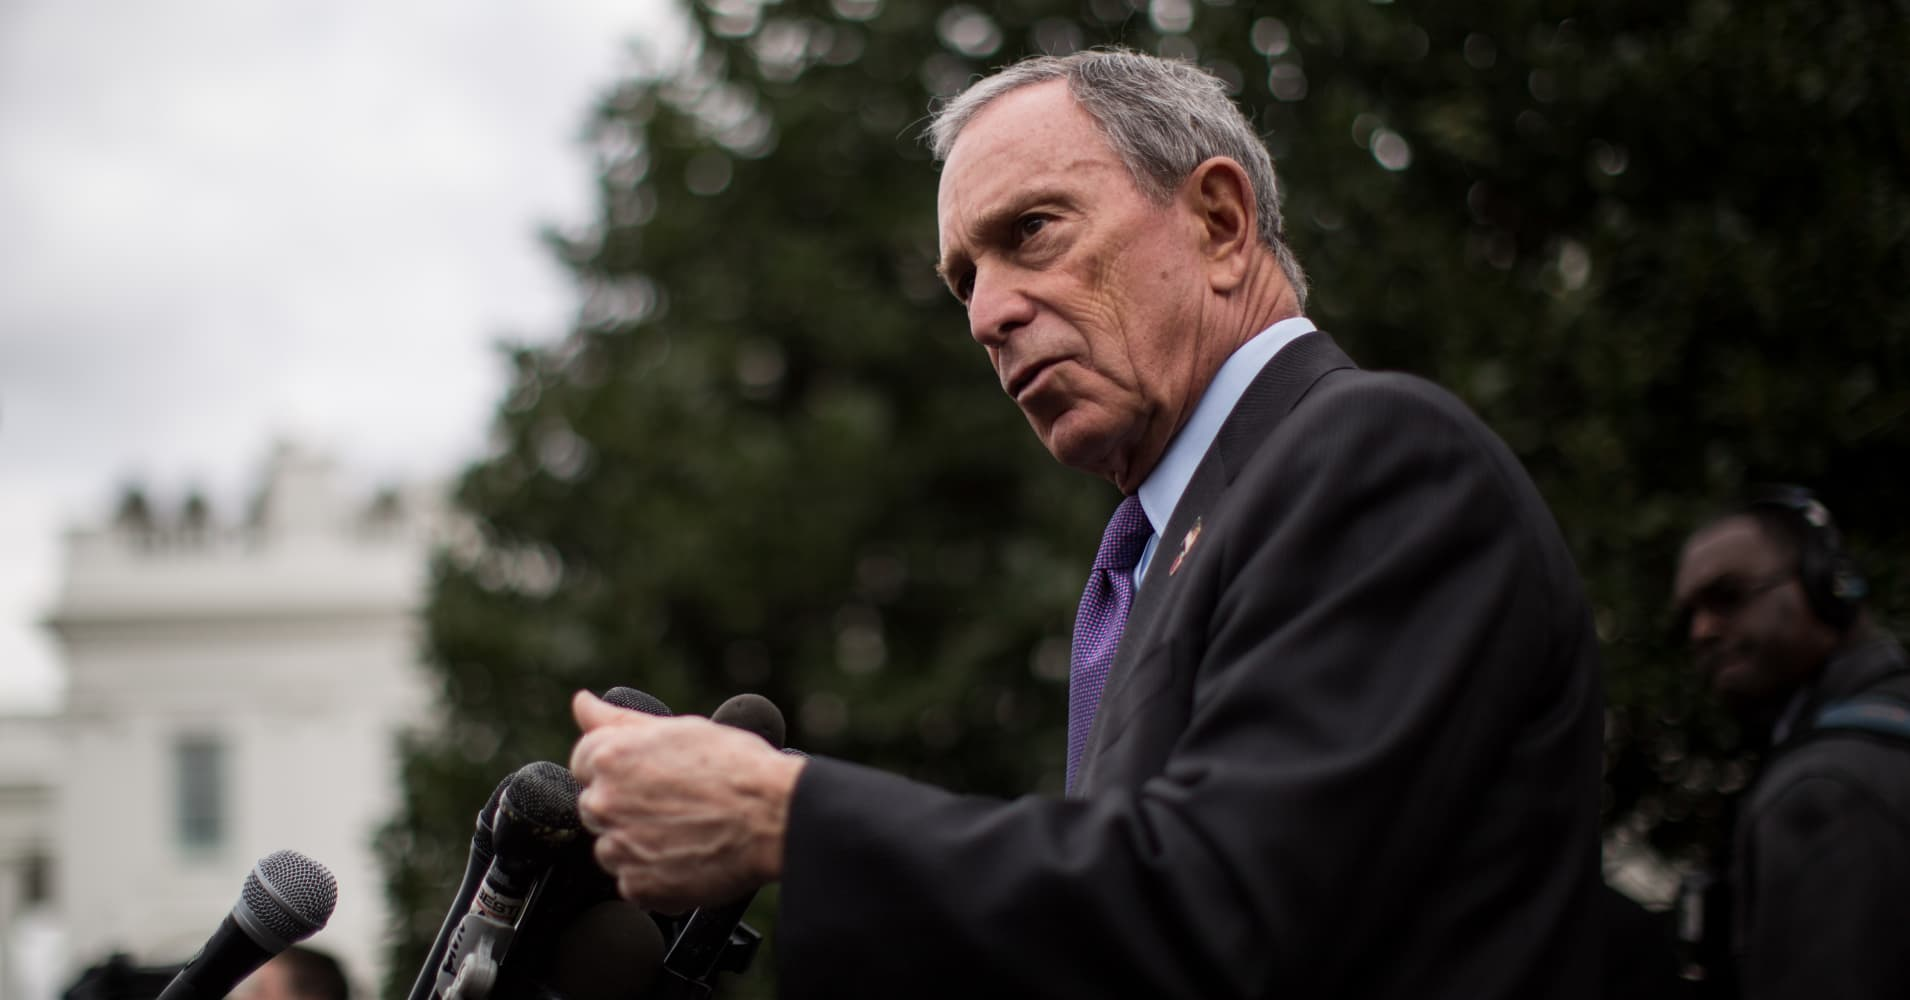 Michael Bloomberg speaks to the media outside the West Wing of the White House after meeting with Vice President Joe Biden, February 27, 2013